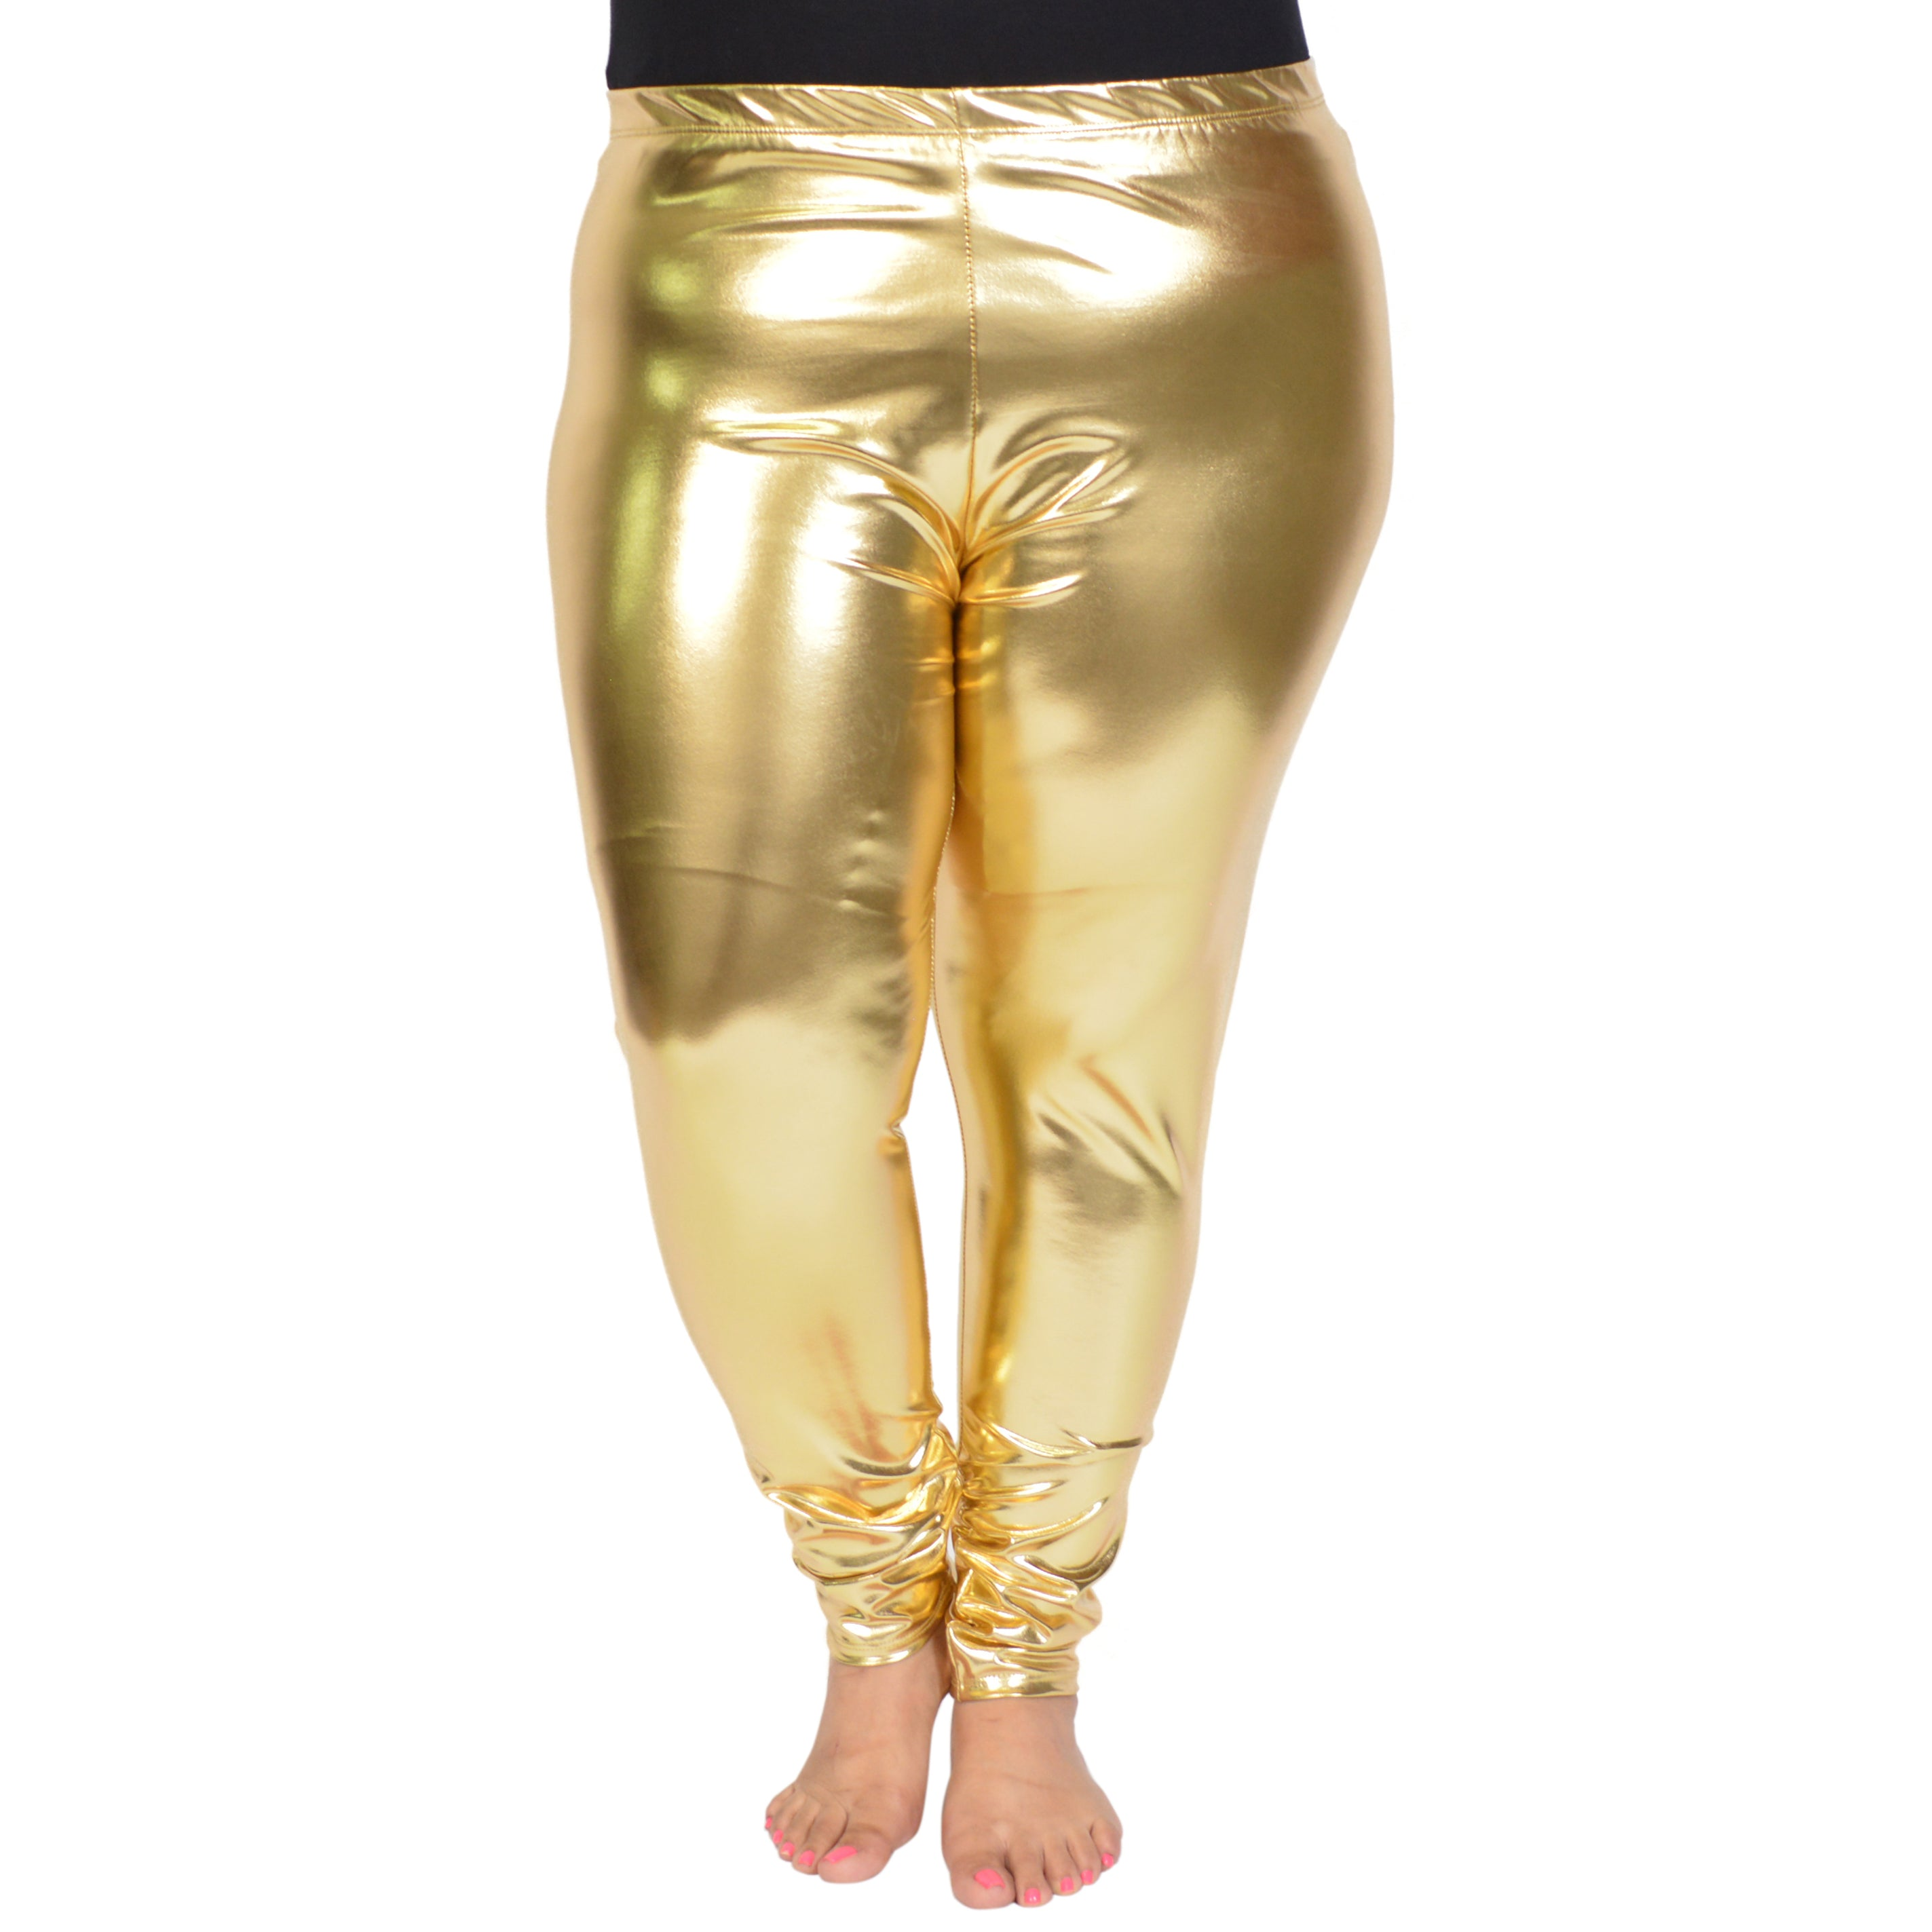 5dfe5d5d63b59 Stretch Is Comfort Women's Plus Size Metallic Leggings